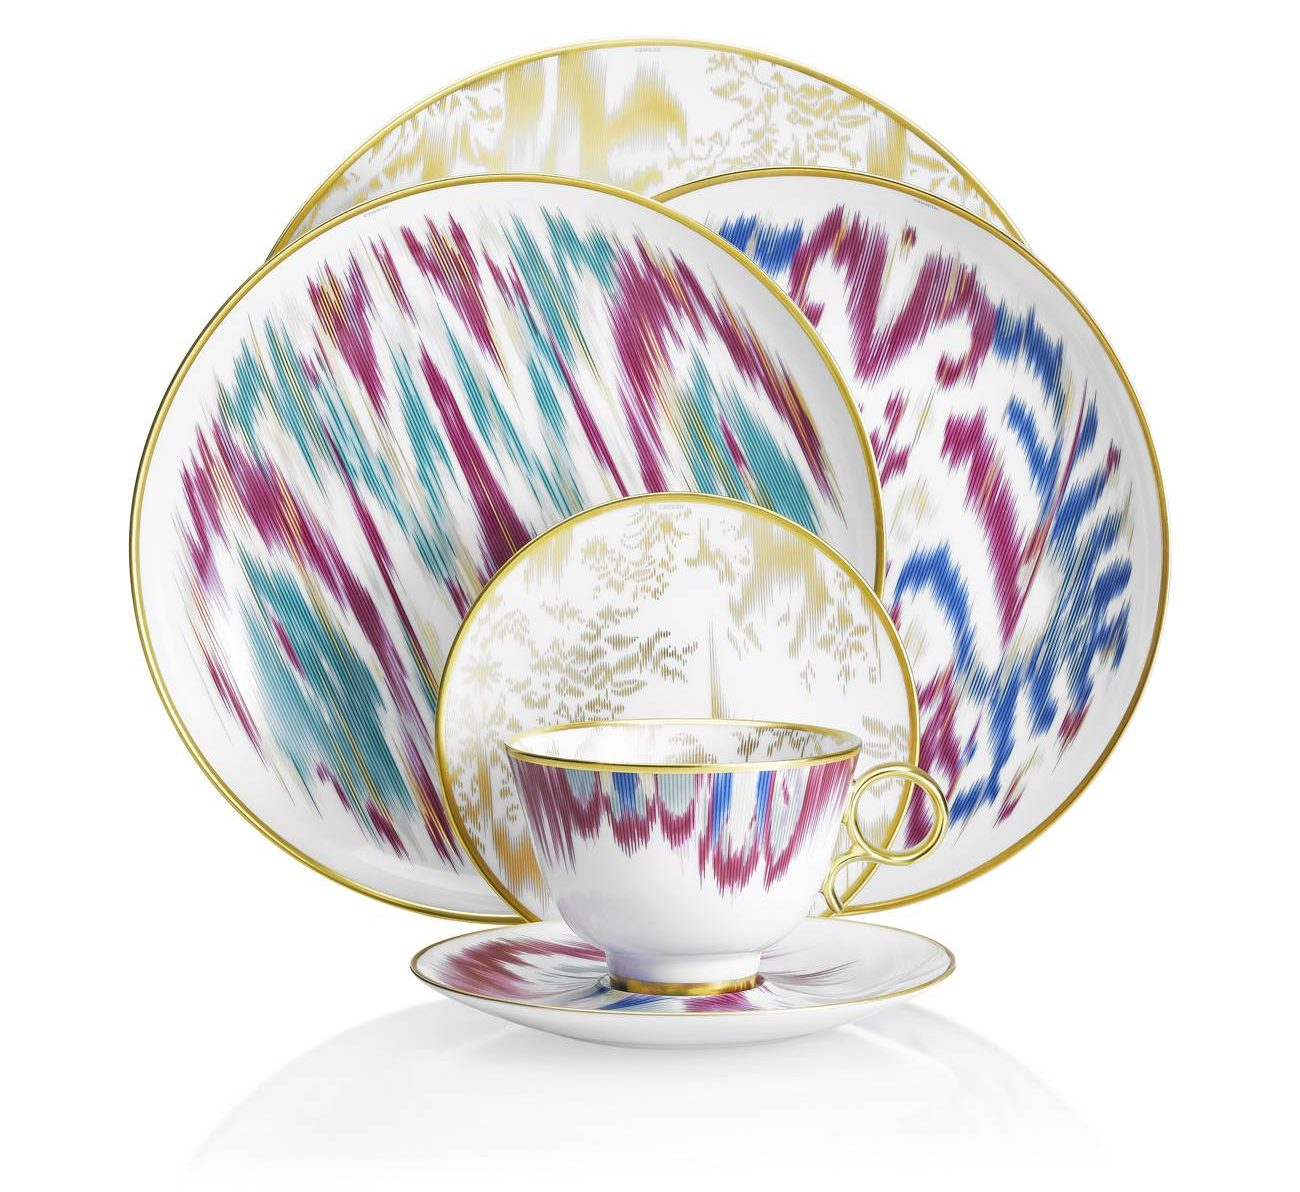 Hermes Voyage En Ikat Dinnerware - luxury dinnerware - luxury tableware - hermes dinnerware